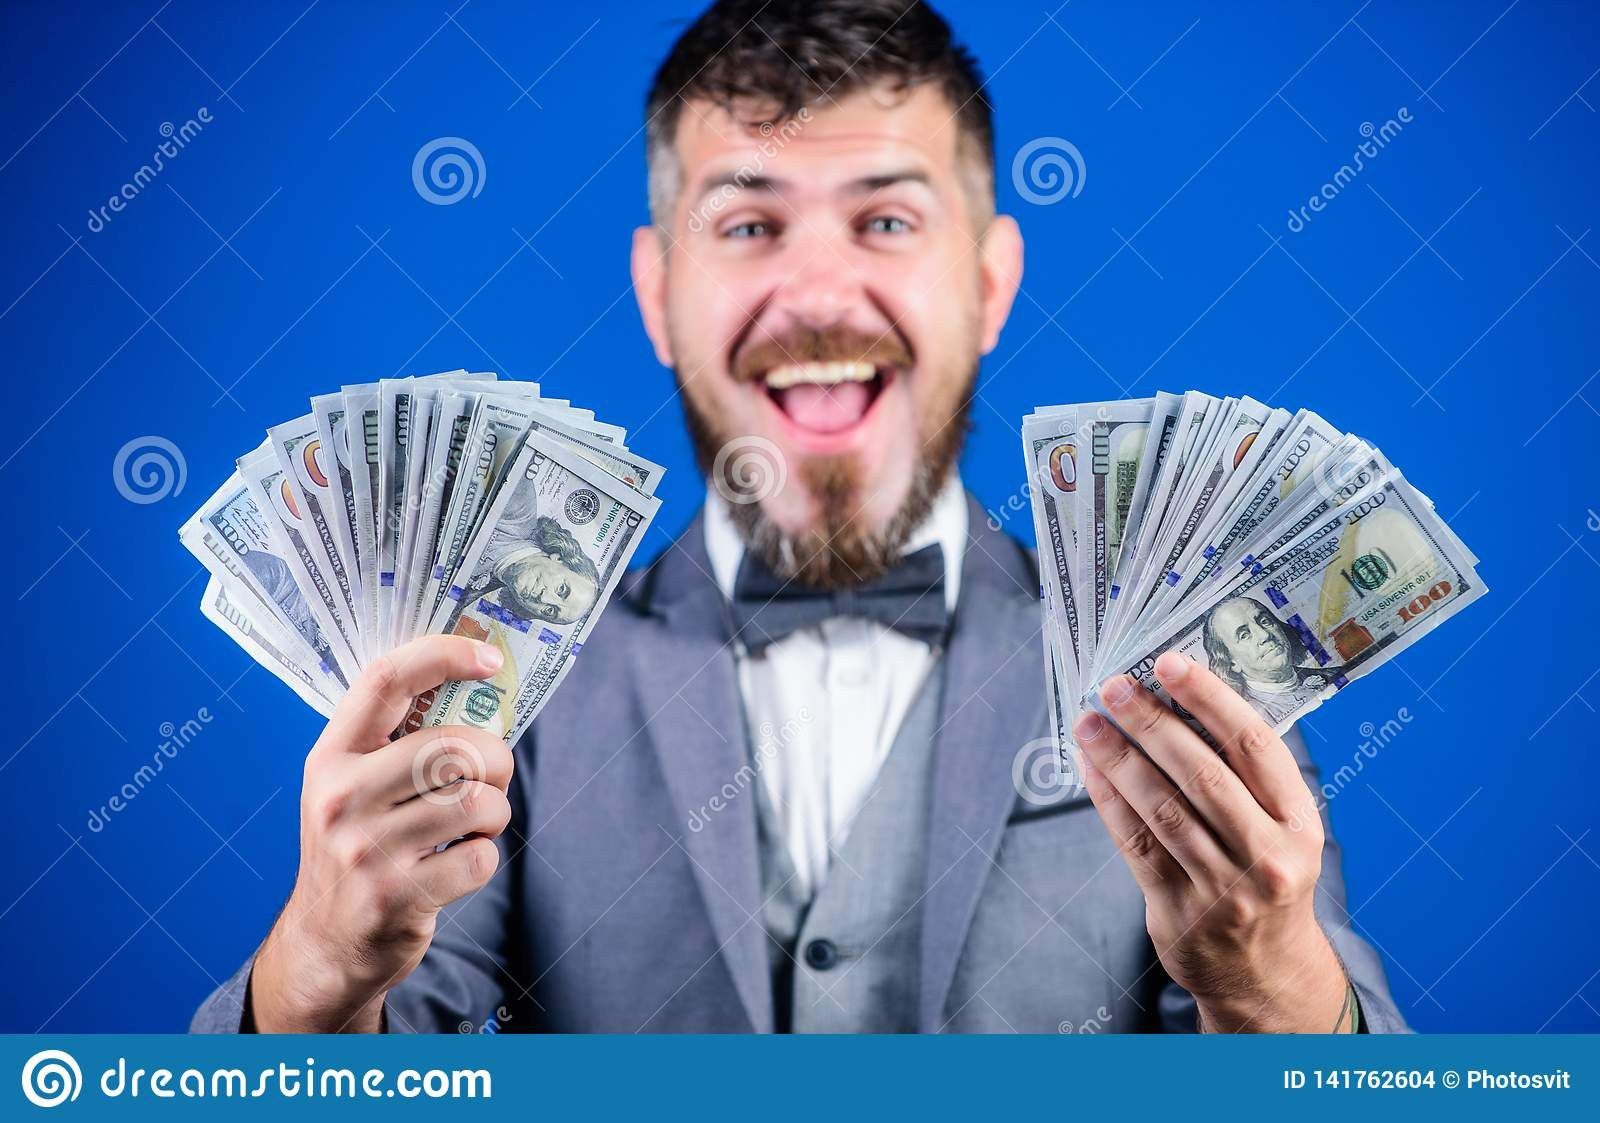 Making money with his own business. Bearded man holding cash money. Rich businessman with us dollars banknotes. Currency